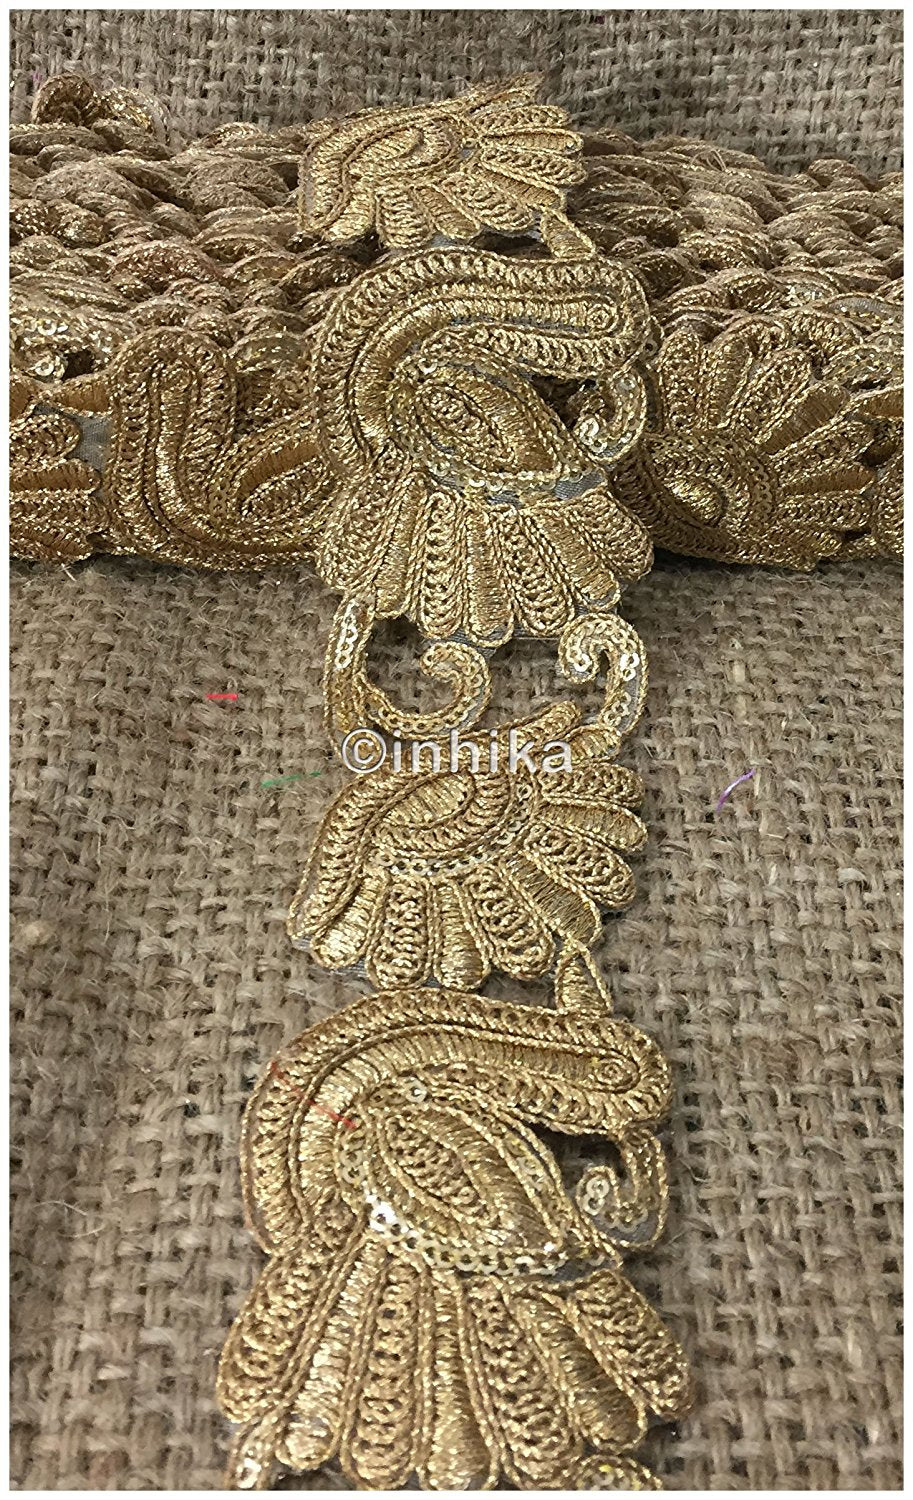 lace trim fabric lace applique trim wedding dress dance costumes and dresses Gold-Embroidery-Sequins-2-Inch-Wide-3247